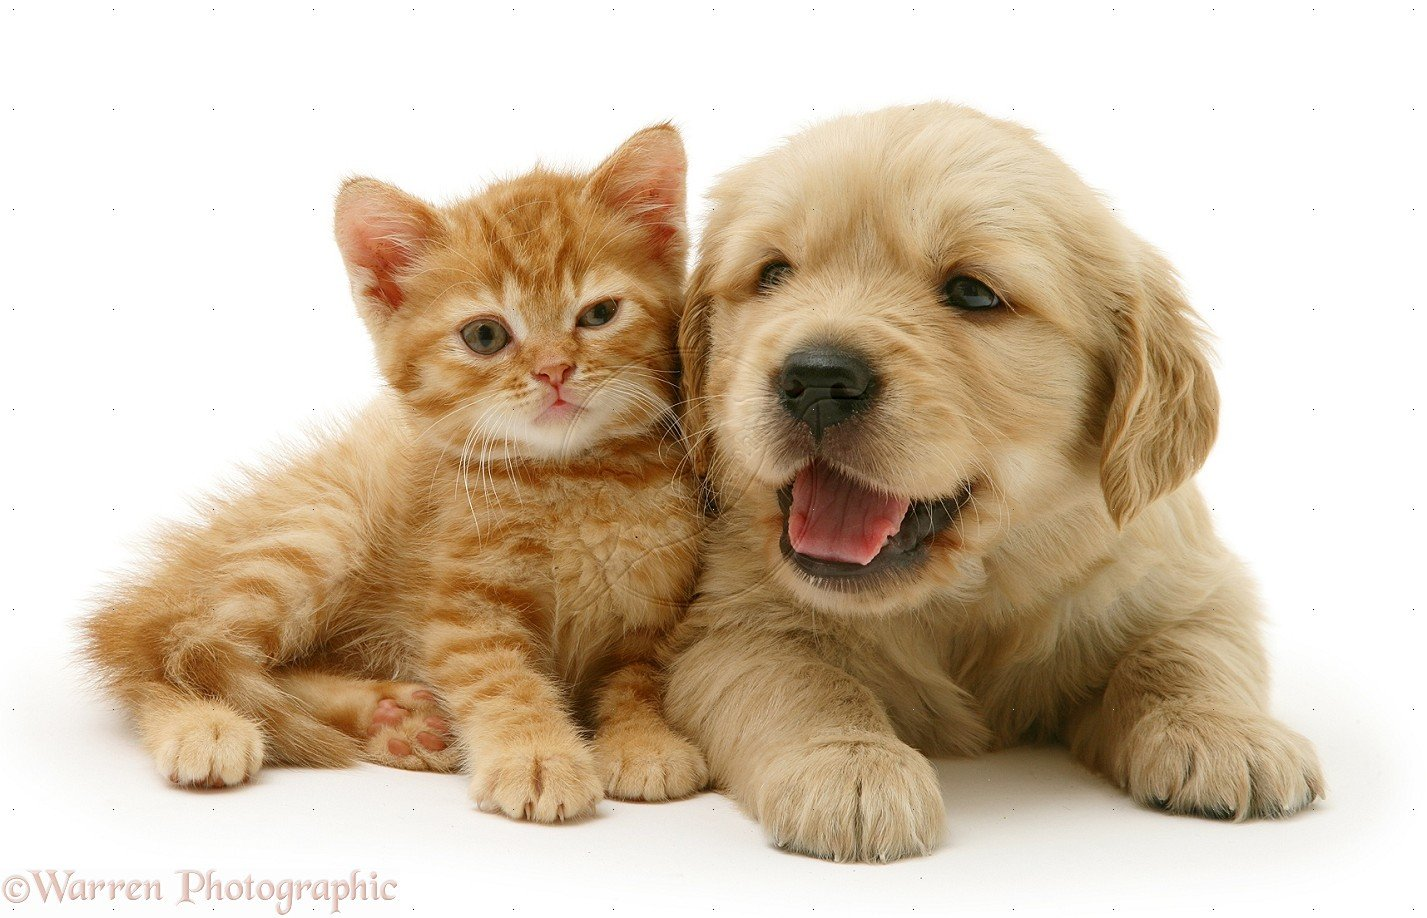 Cute Puppy and Kitten Wallpapers - WallpaperSafari